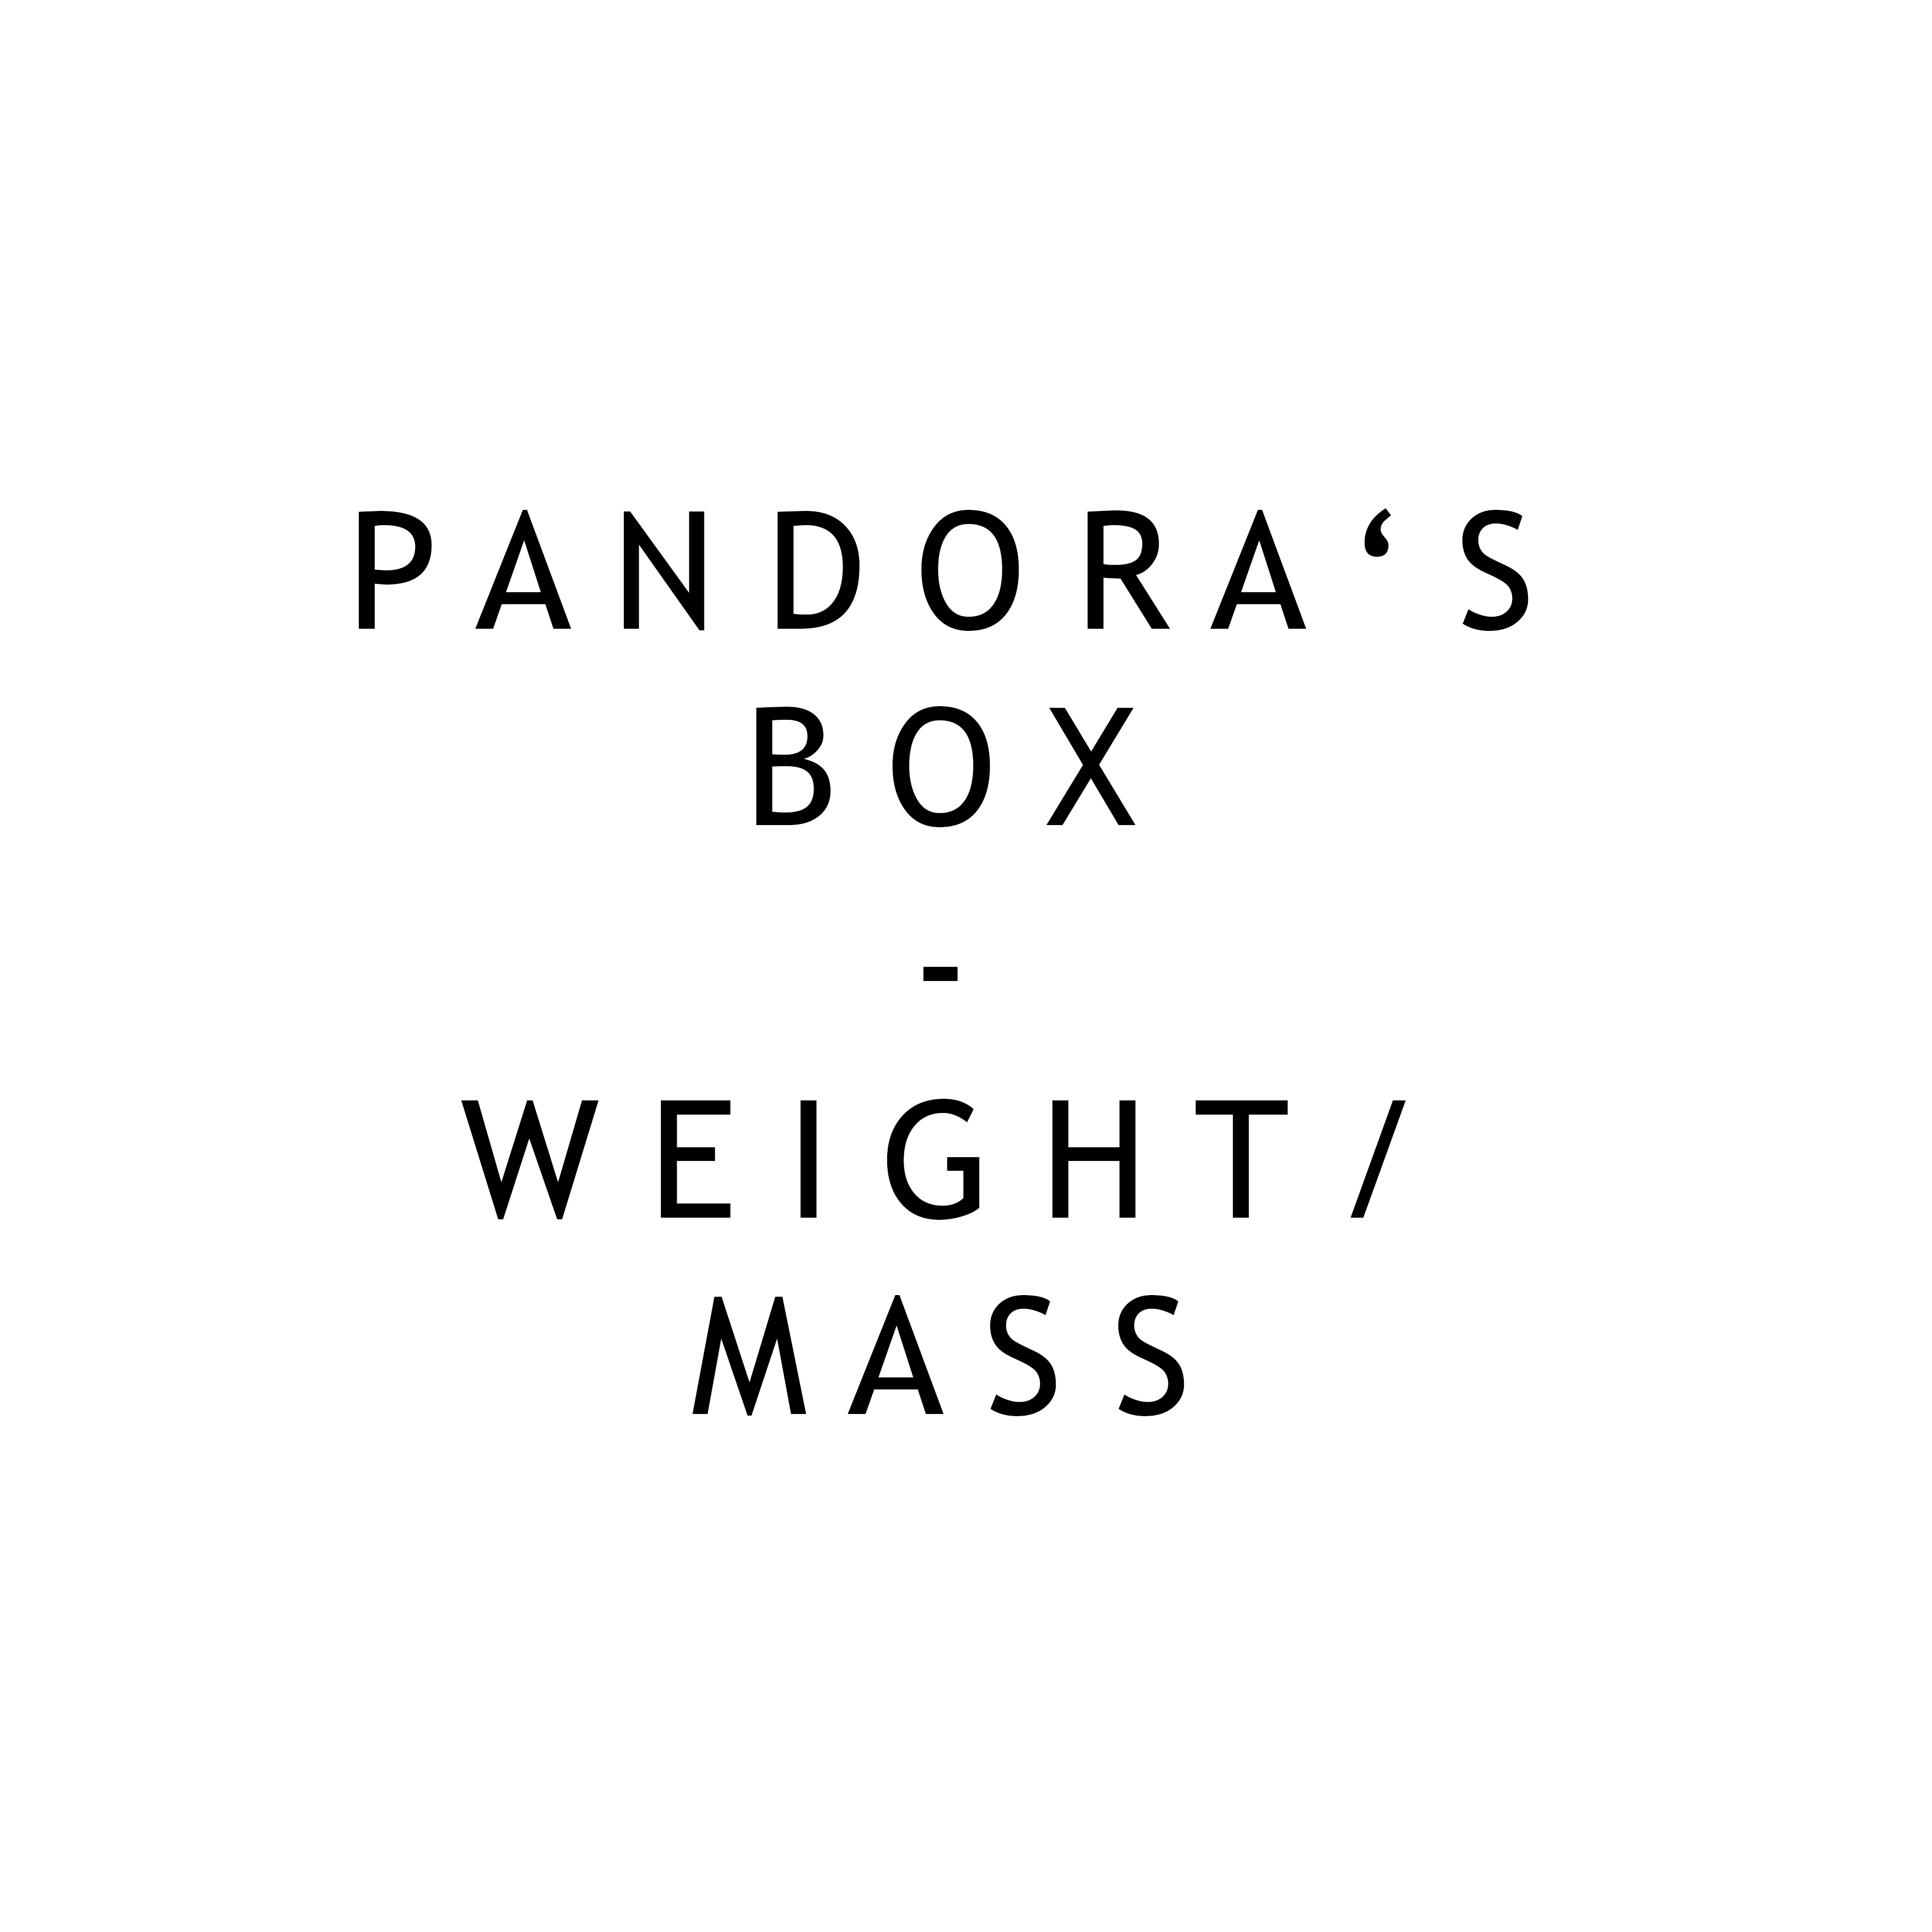 Pandoras Box: Final sketch analysis and functions